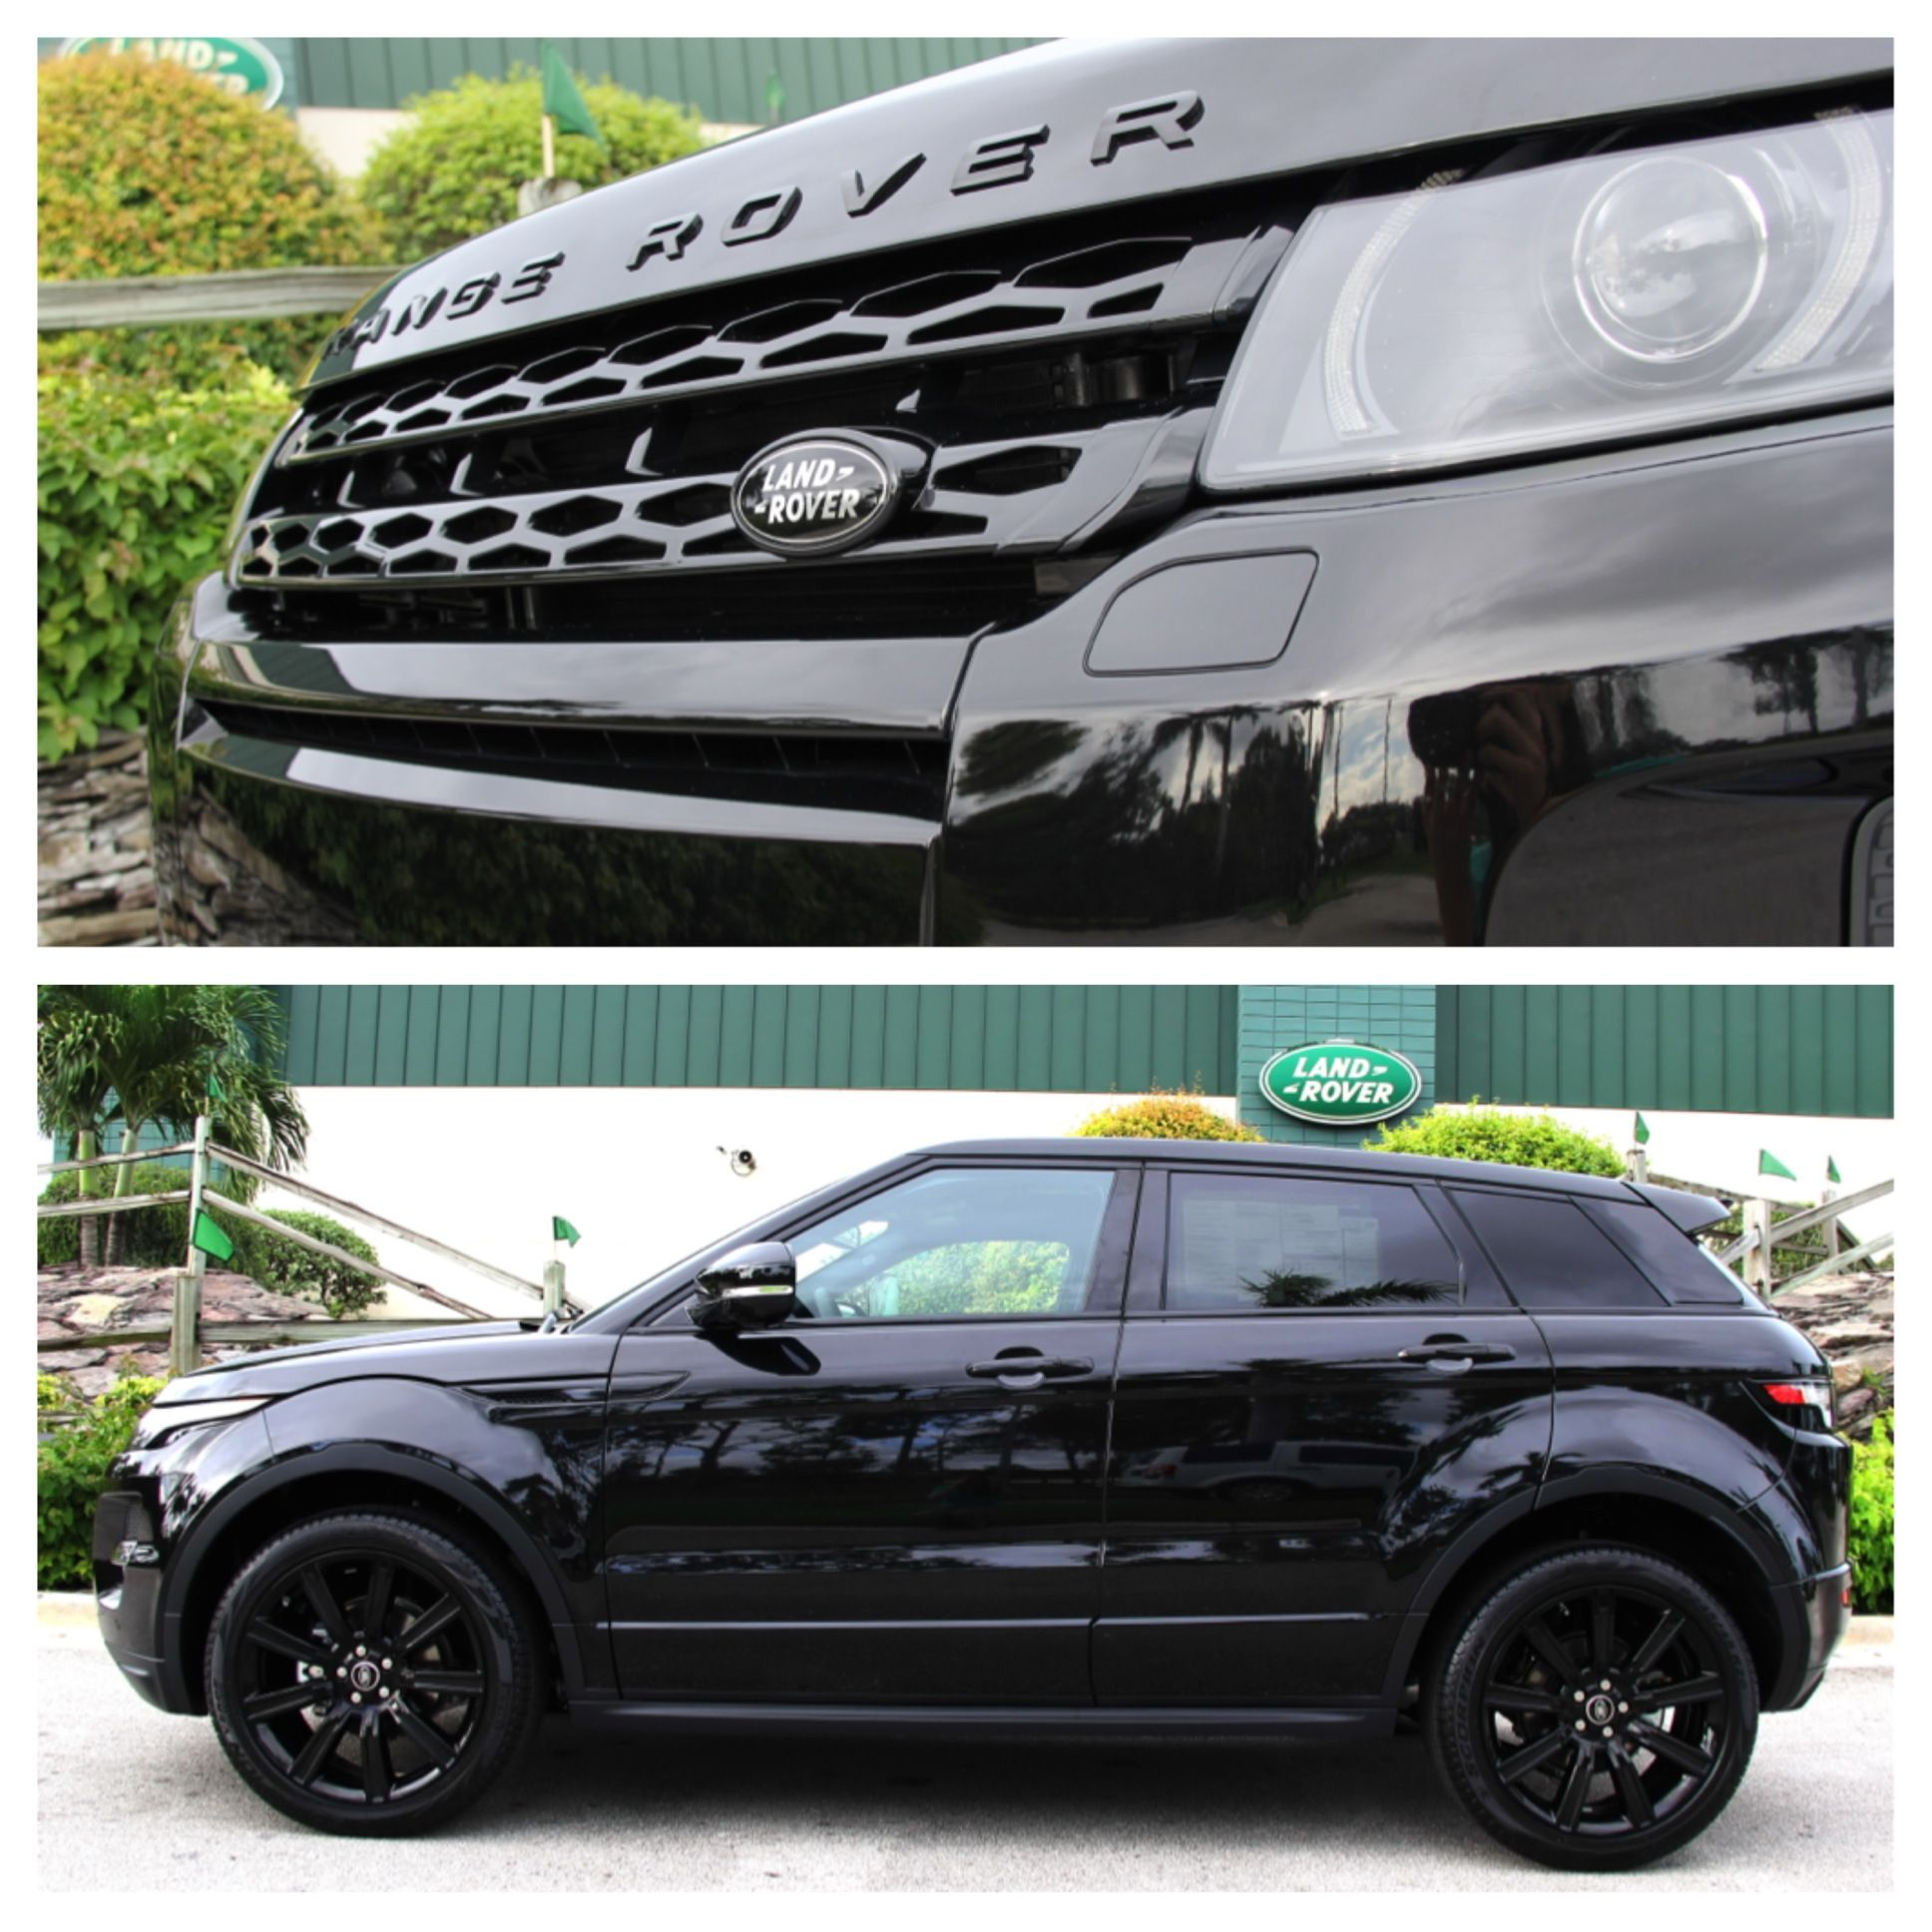 Used Land Rover Range Rover Evoque Suv 2 0 Td4 Hse Dynamic